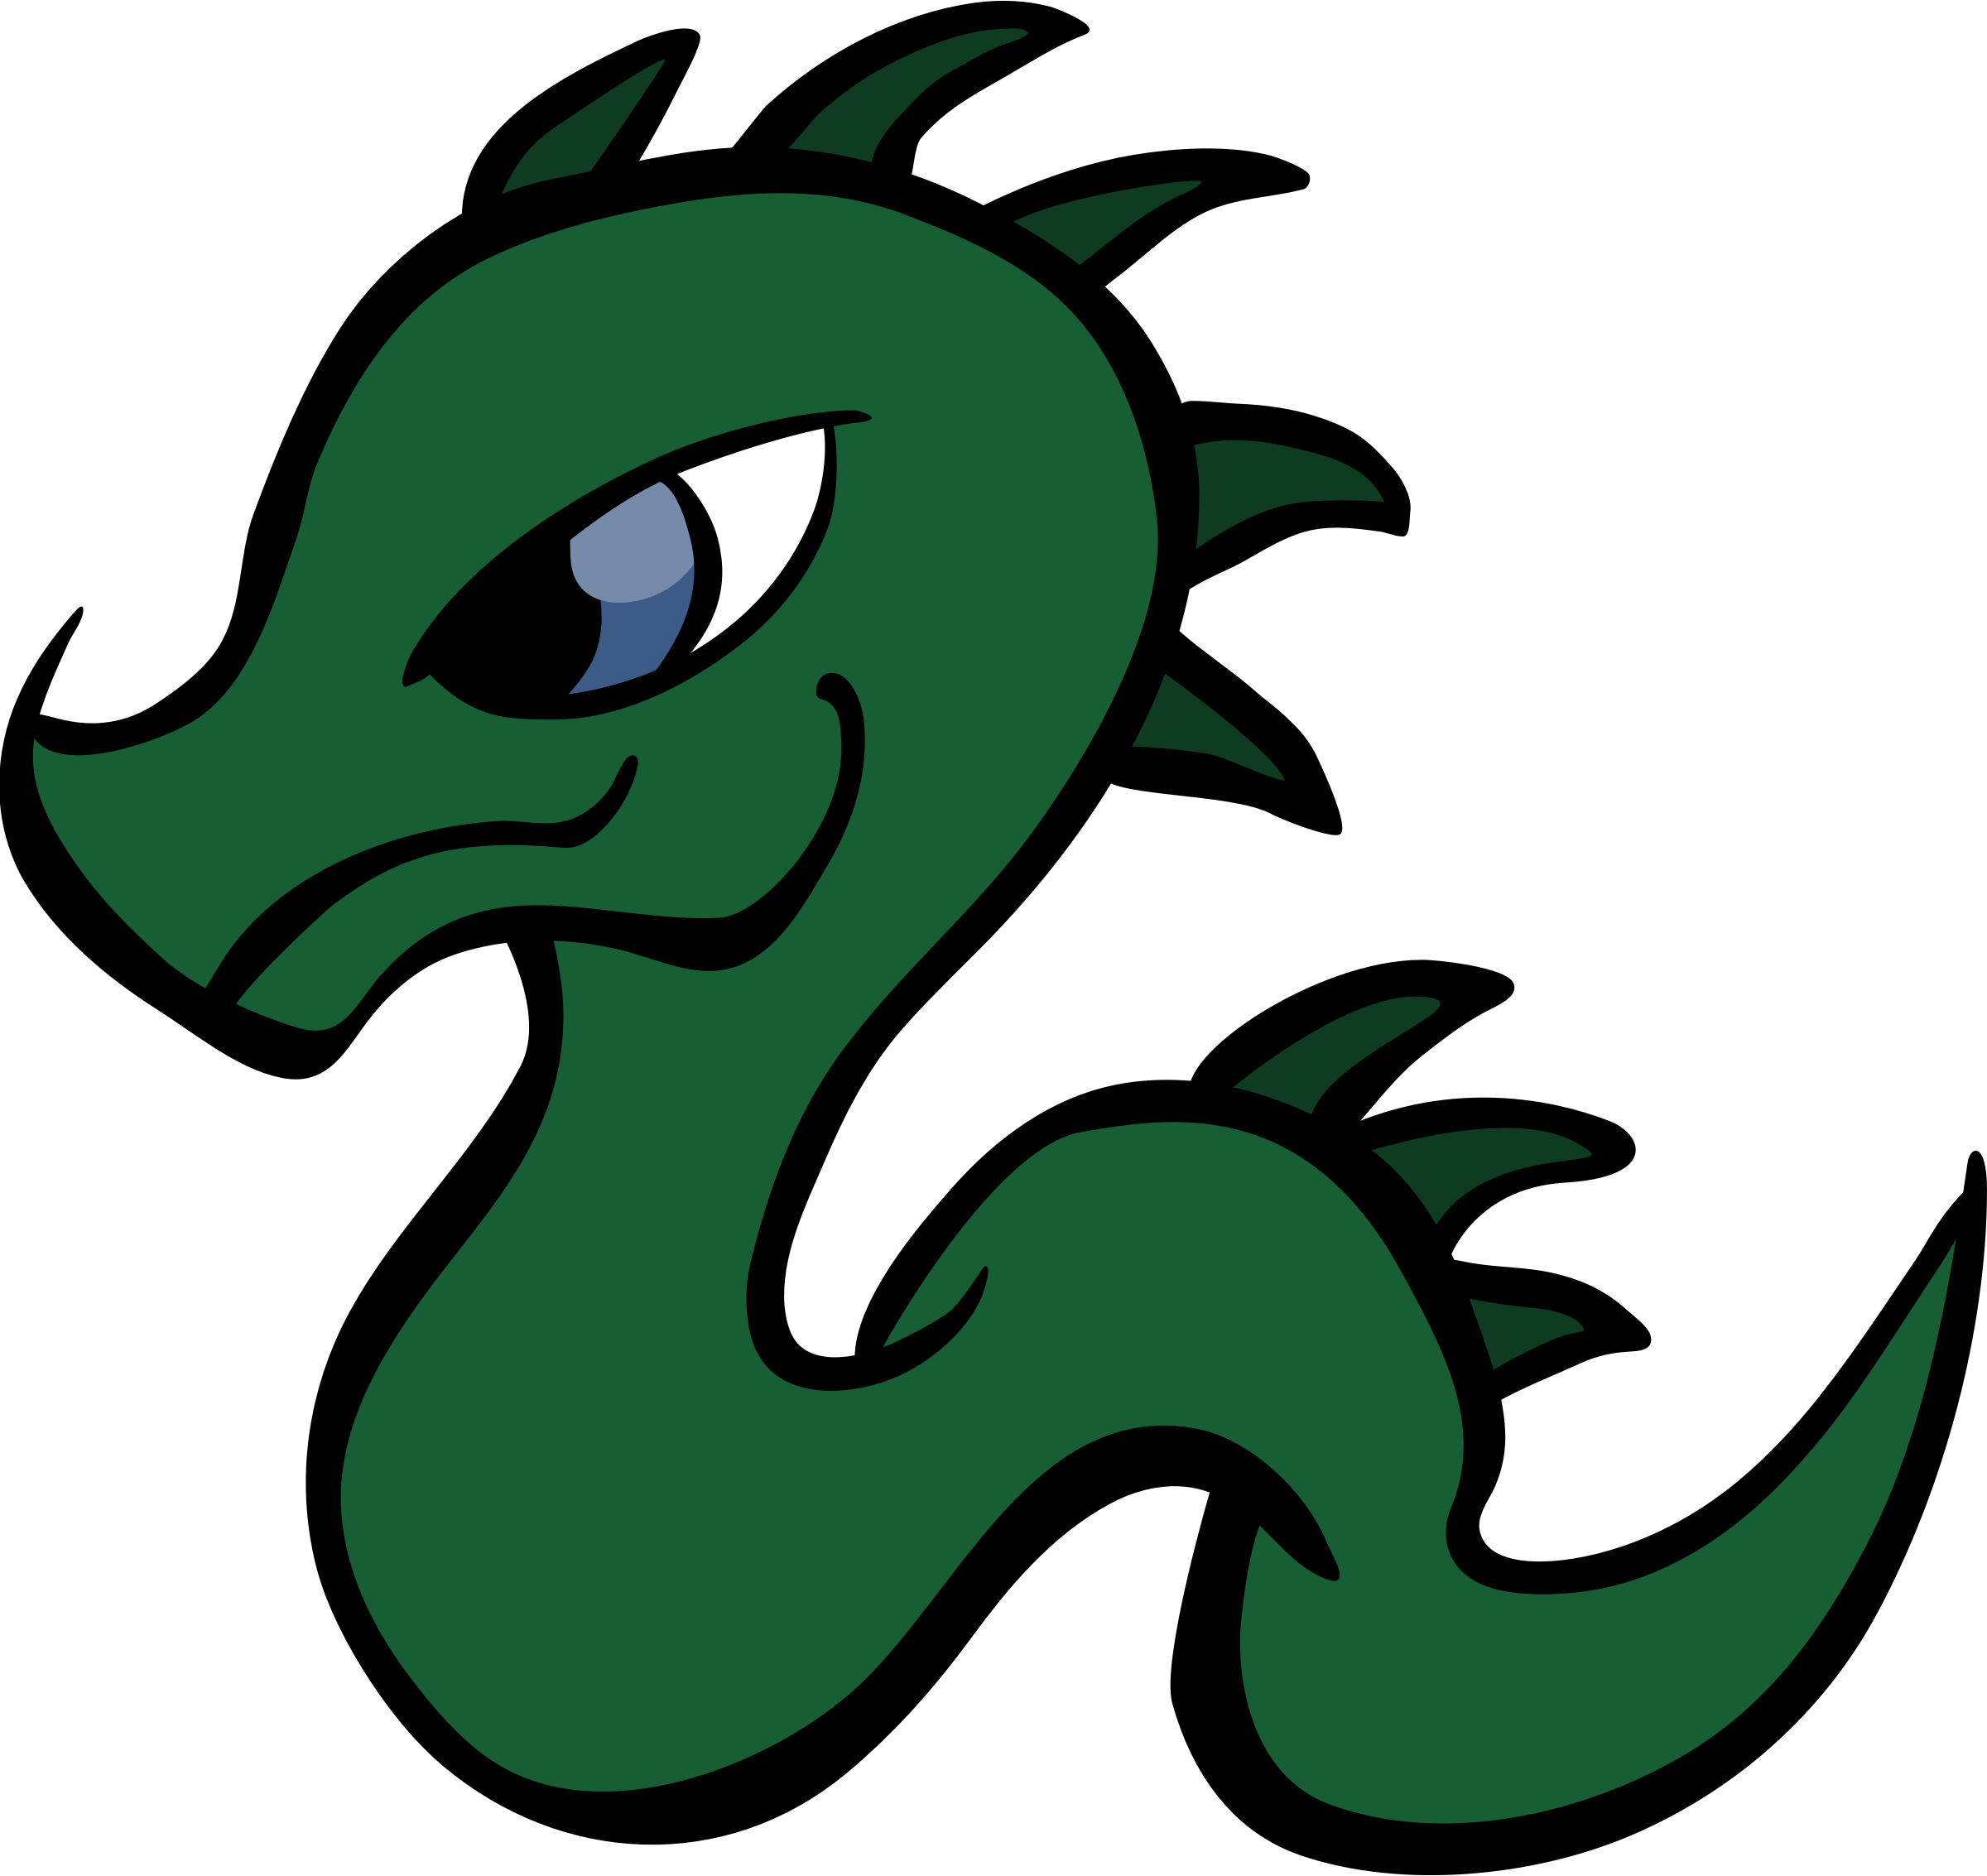 Baby dragon vector clipart free public domain stock photo cc0.